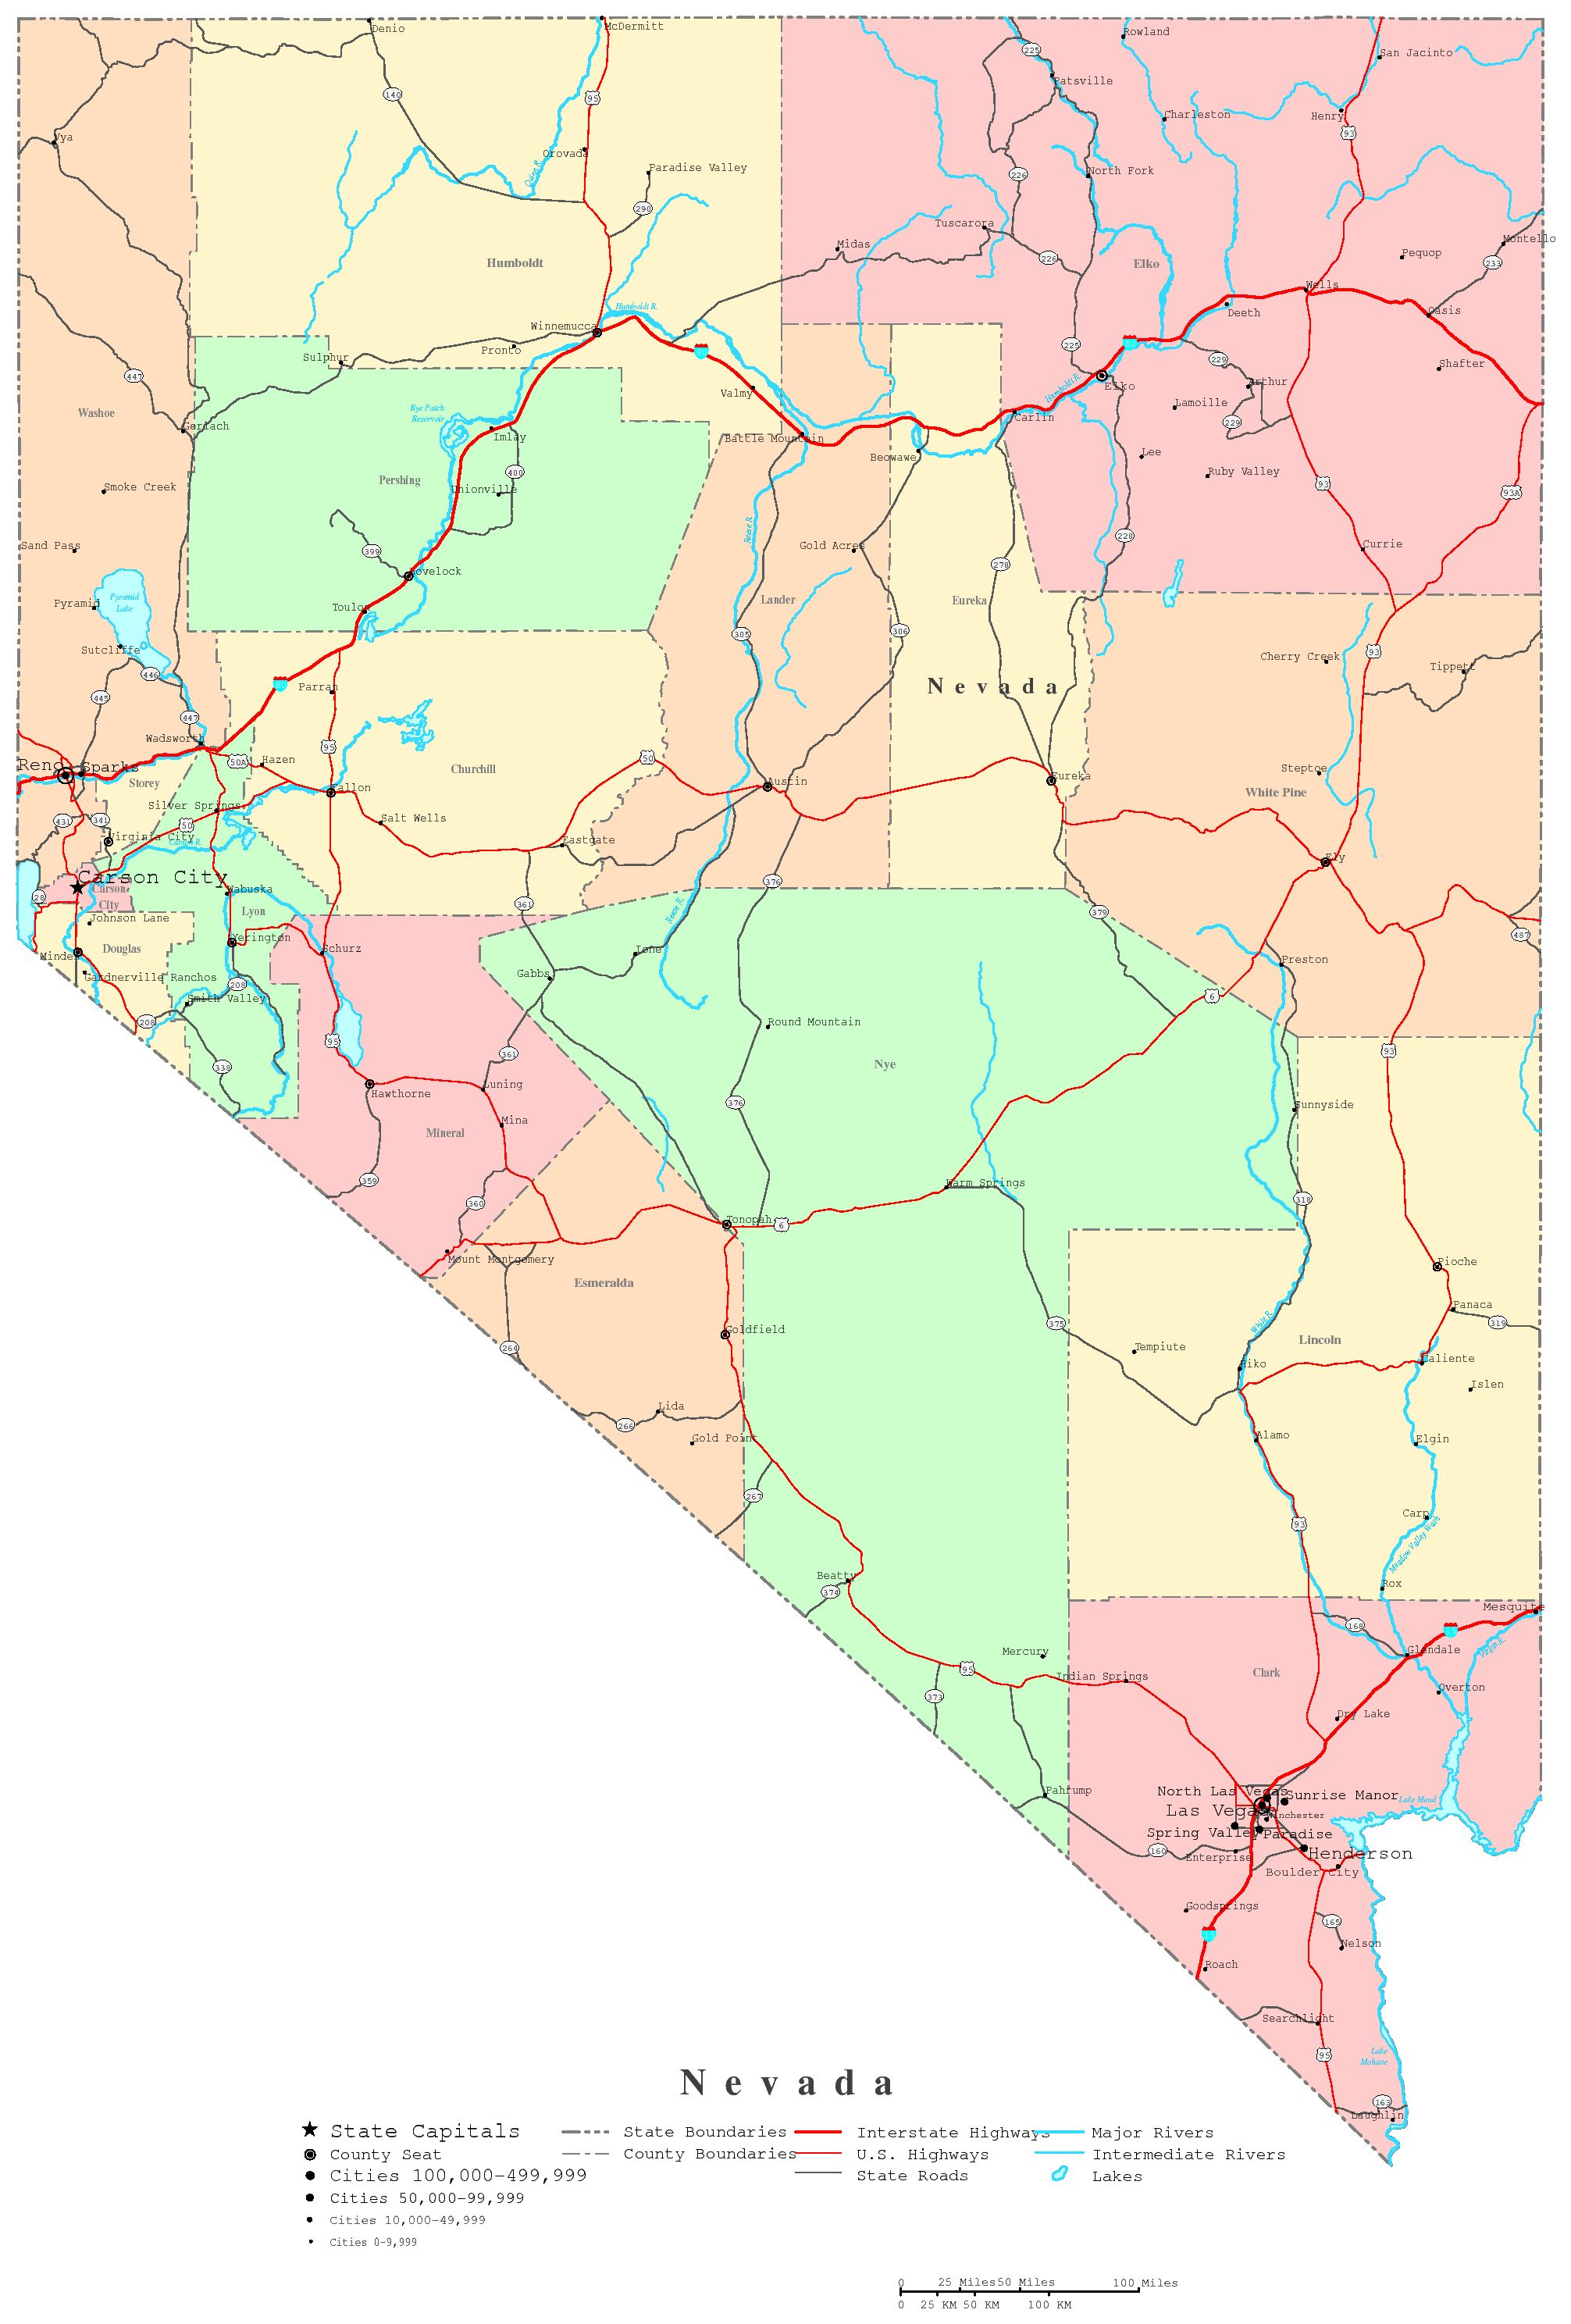 Nevada Map - online maps of Nevada State on